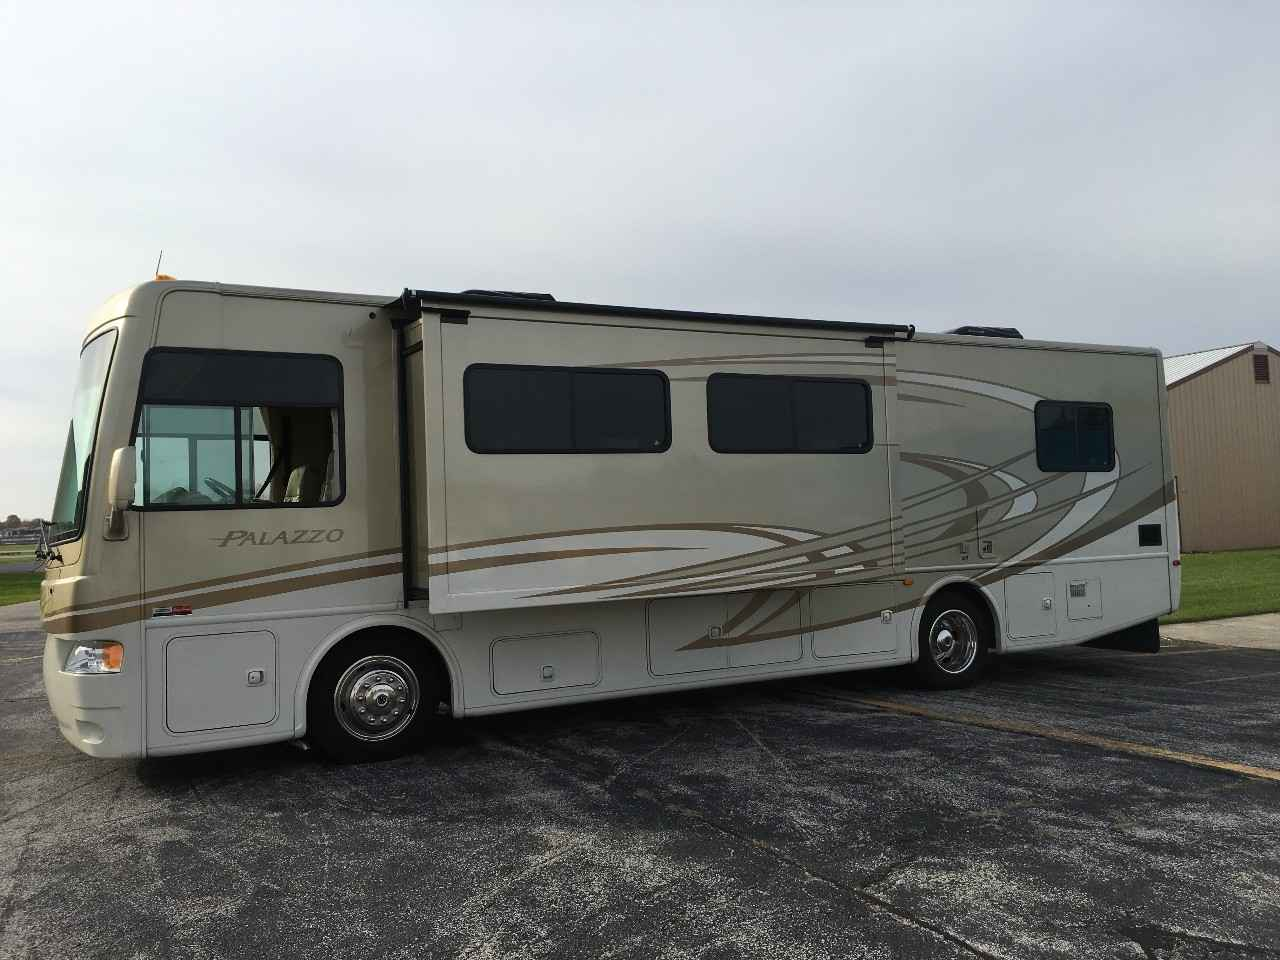 2013 used thor motor coach palazzo 33 1 class a in indiana in for Class a motor coach